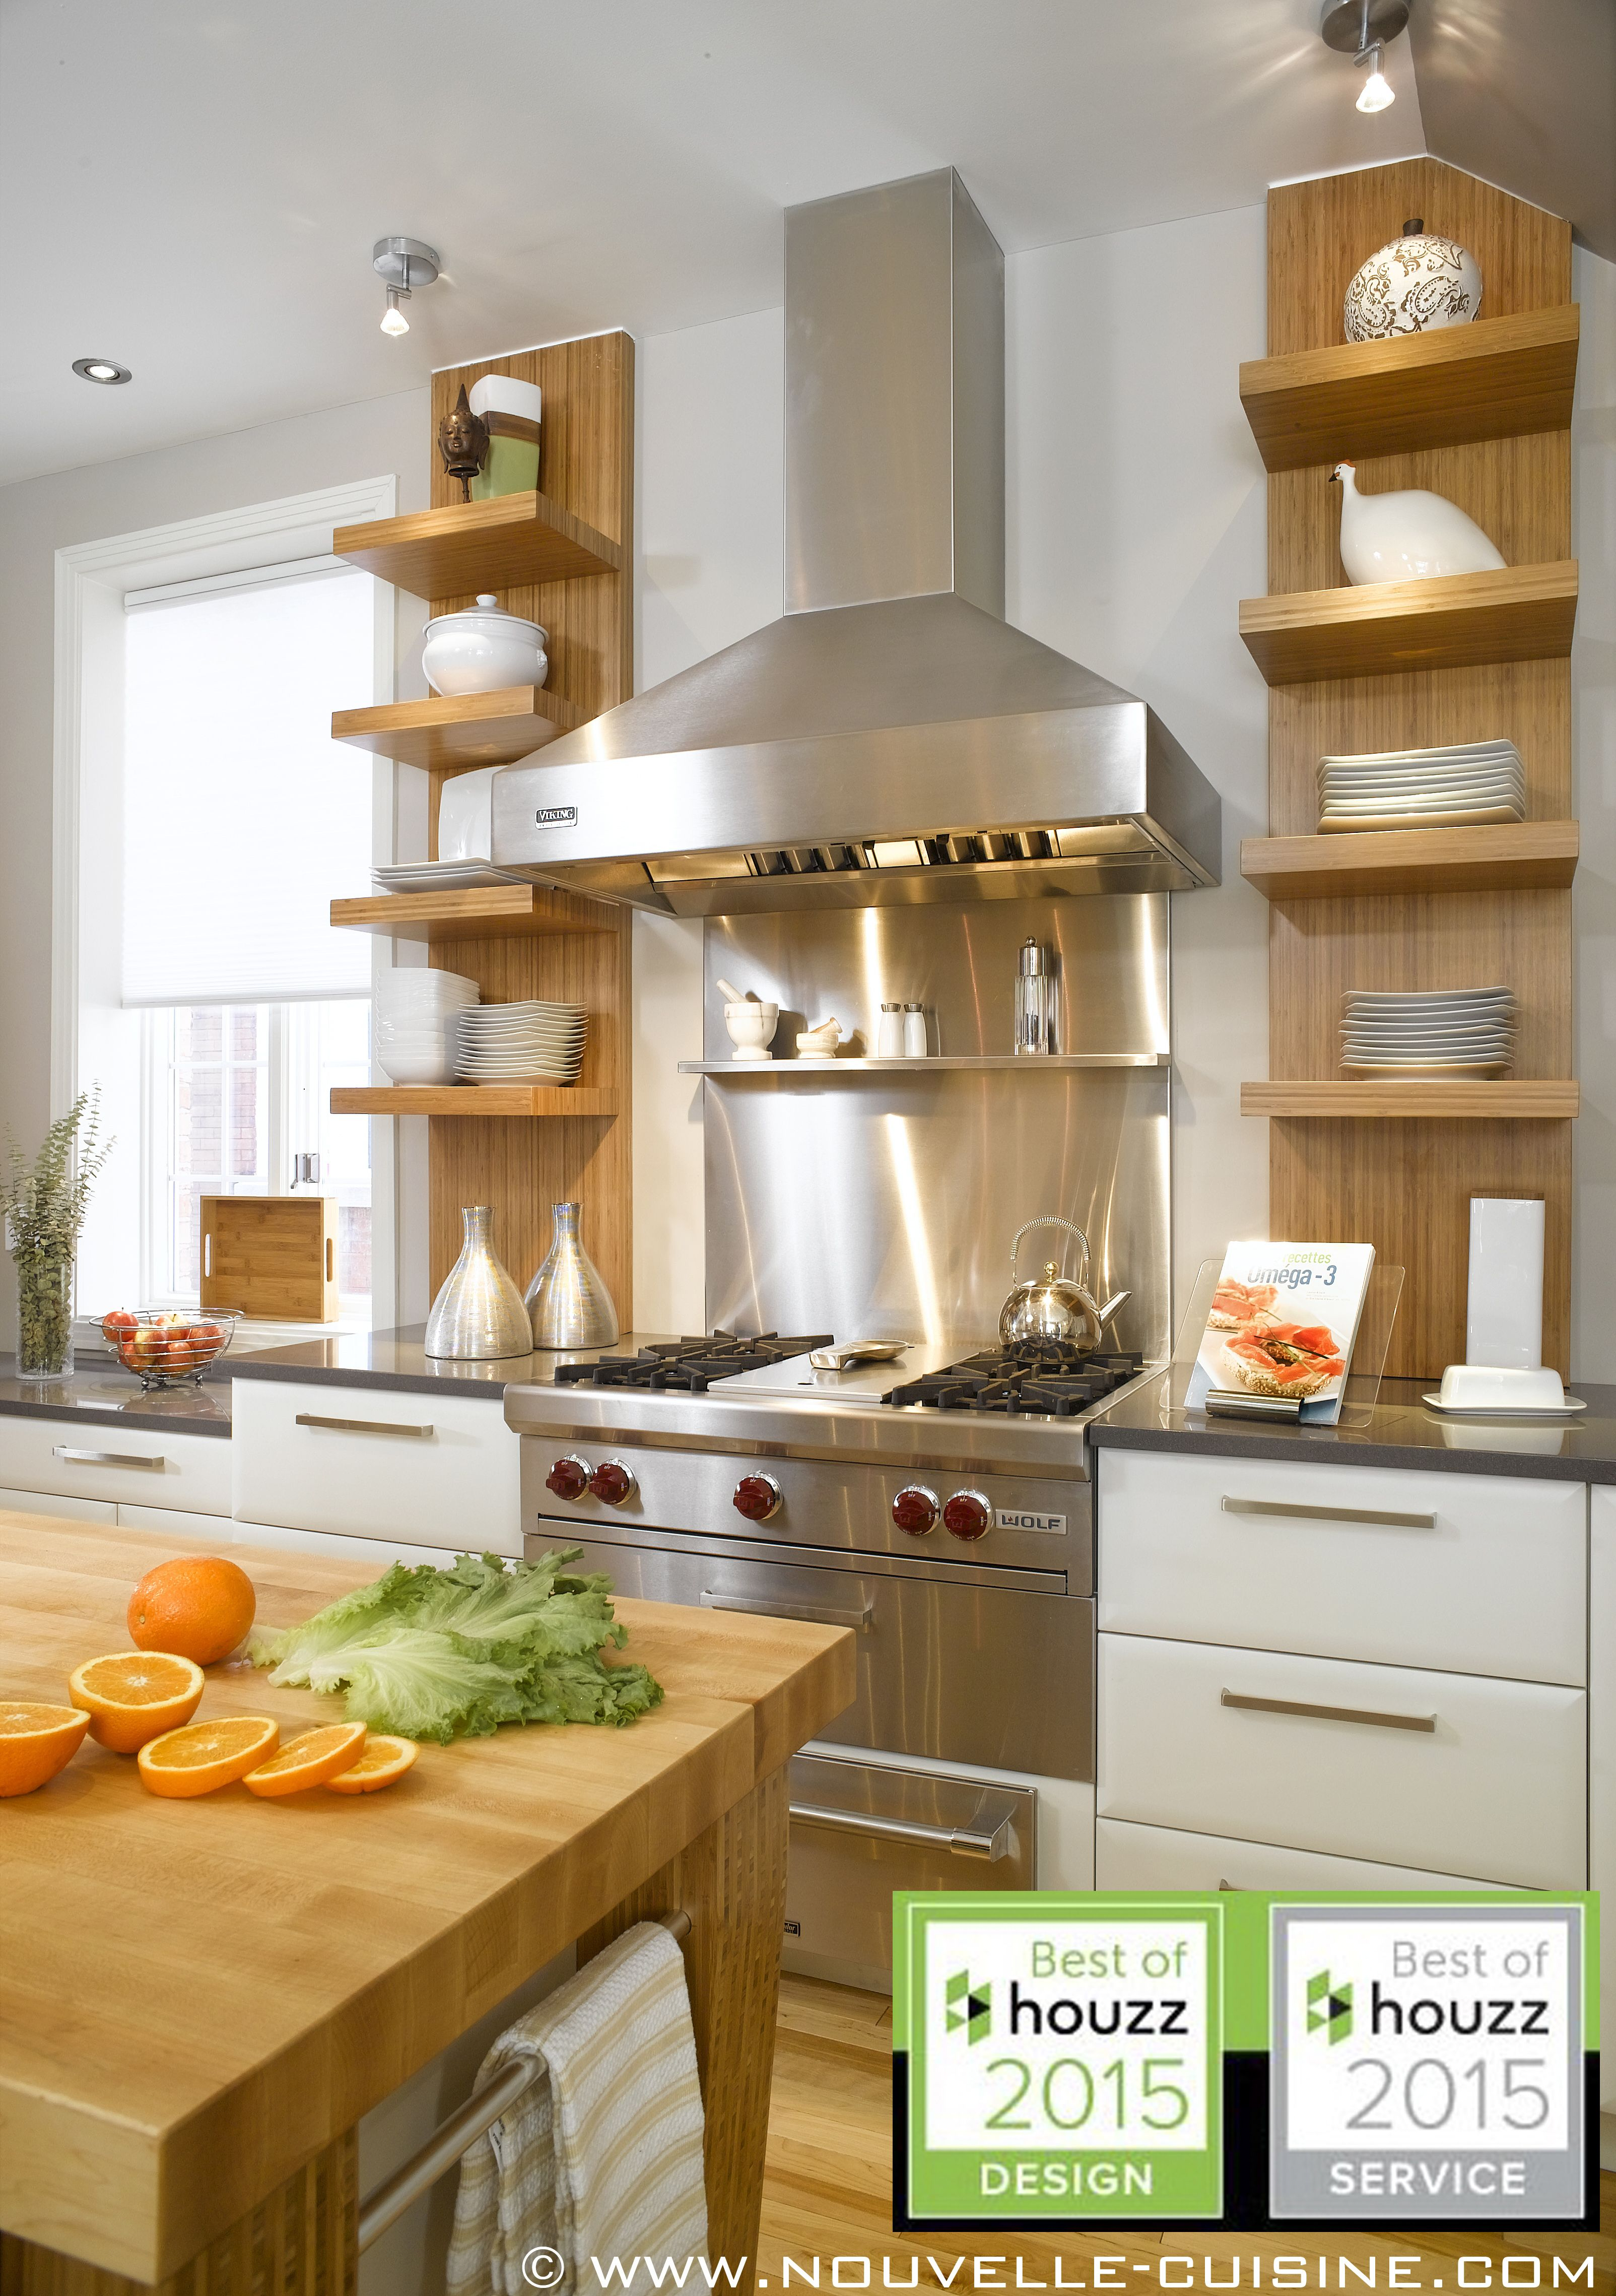 Polymer Kitchen Cabinets And Quartz Countertops In This Inviting Space. /  Armoires De Cuisine En